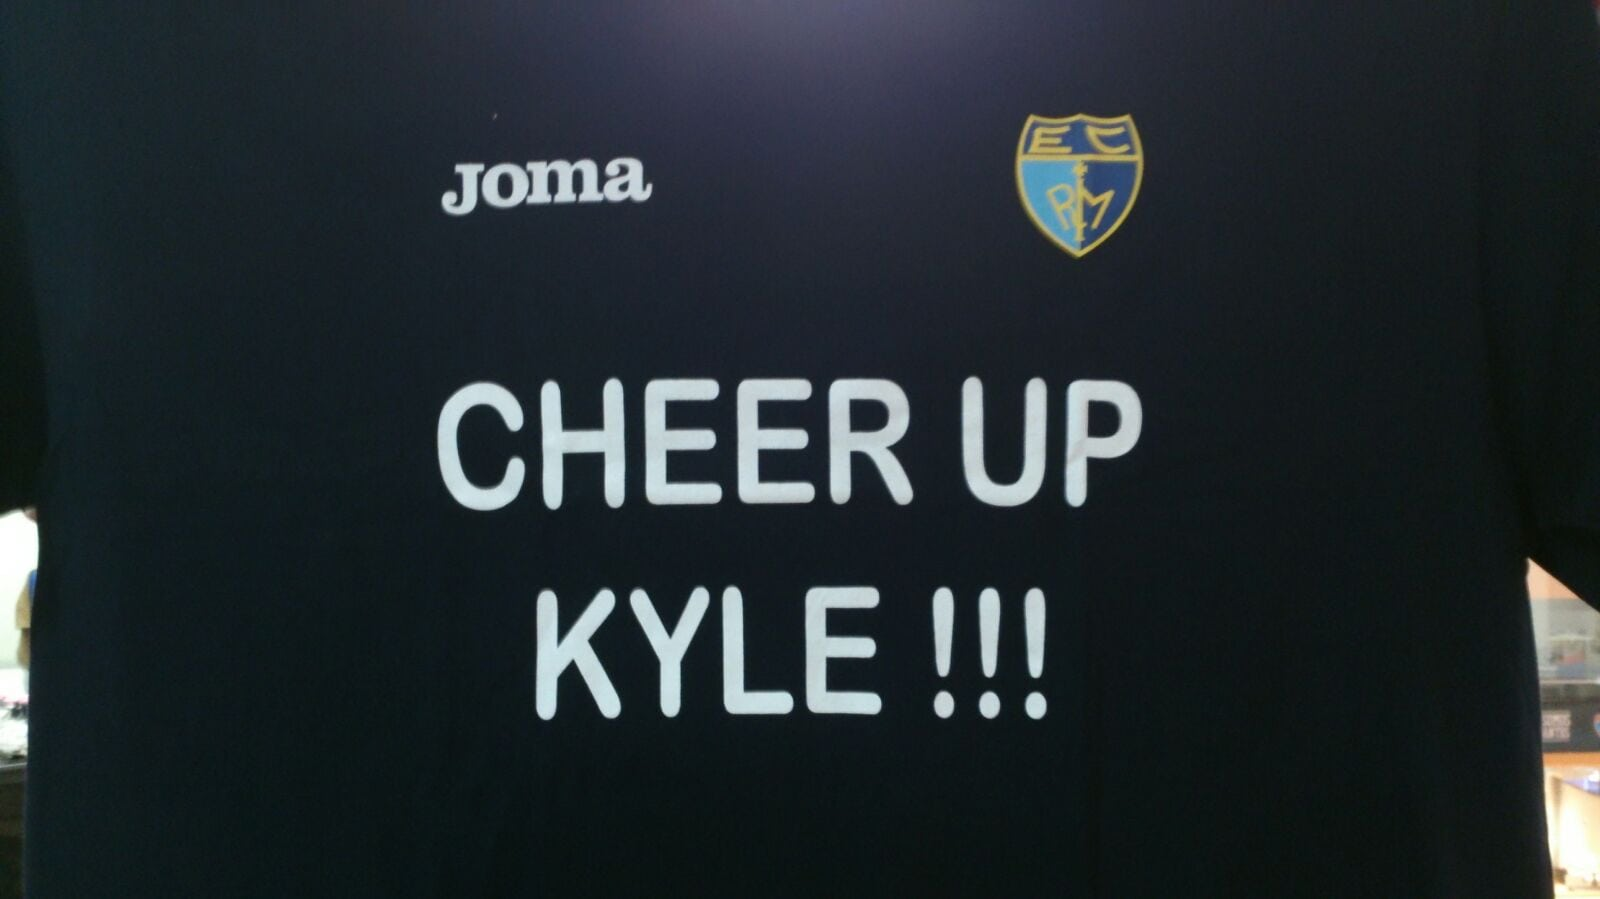 Cheer up Kyle!